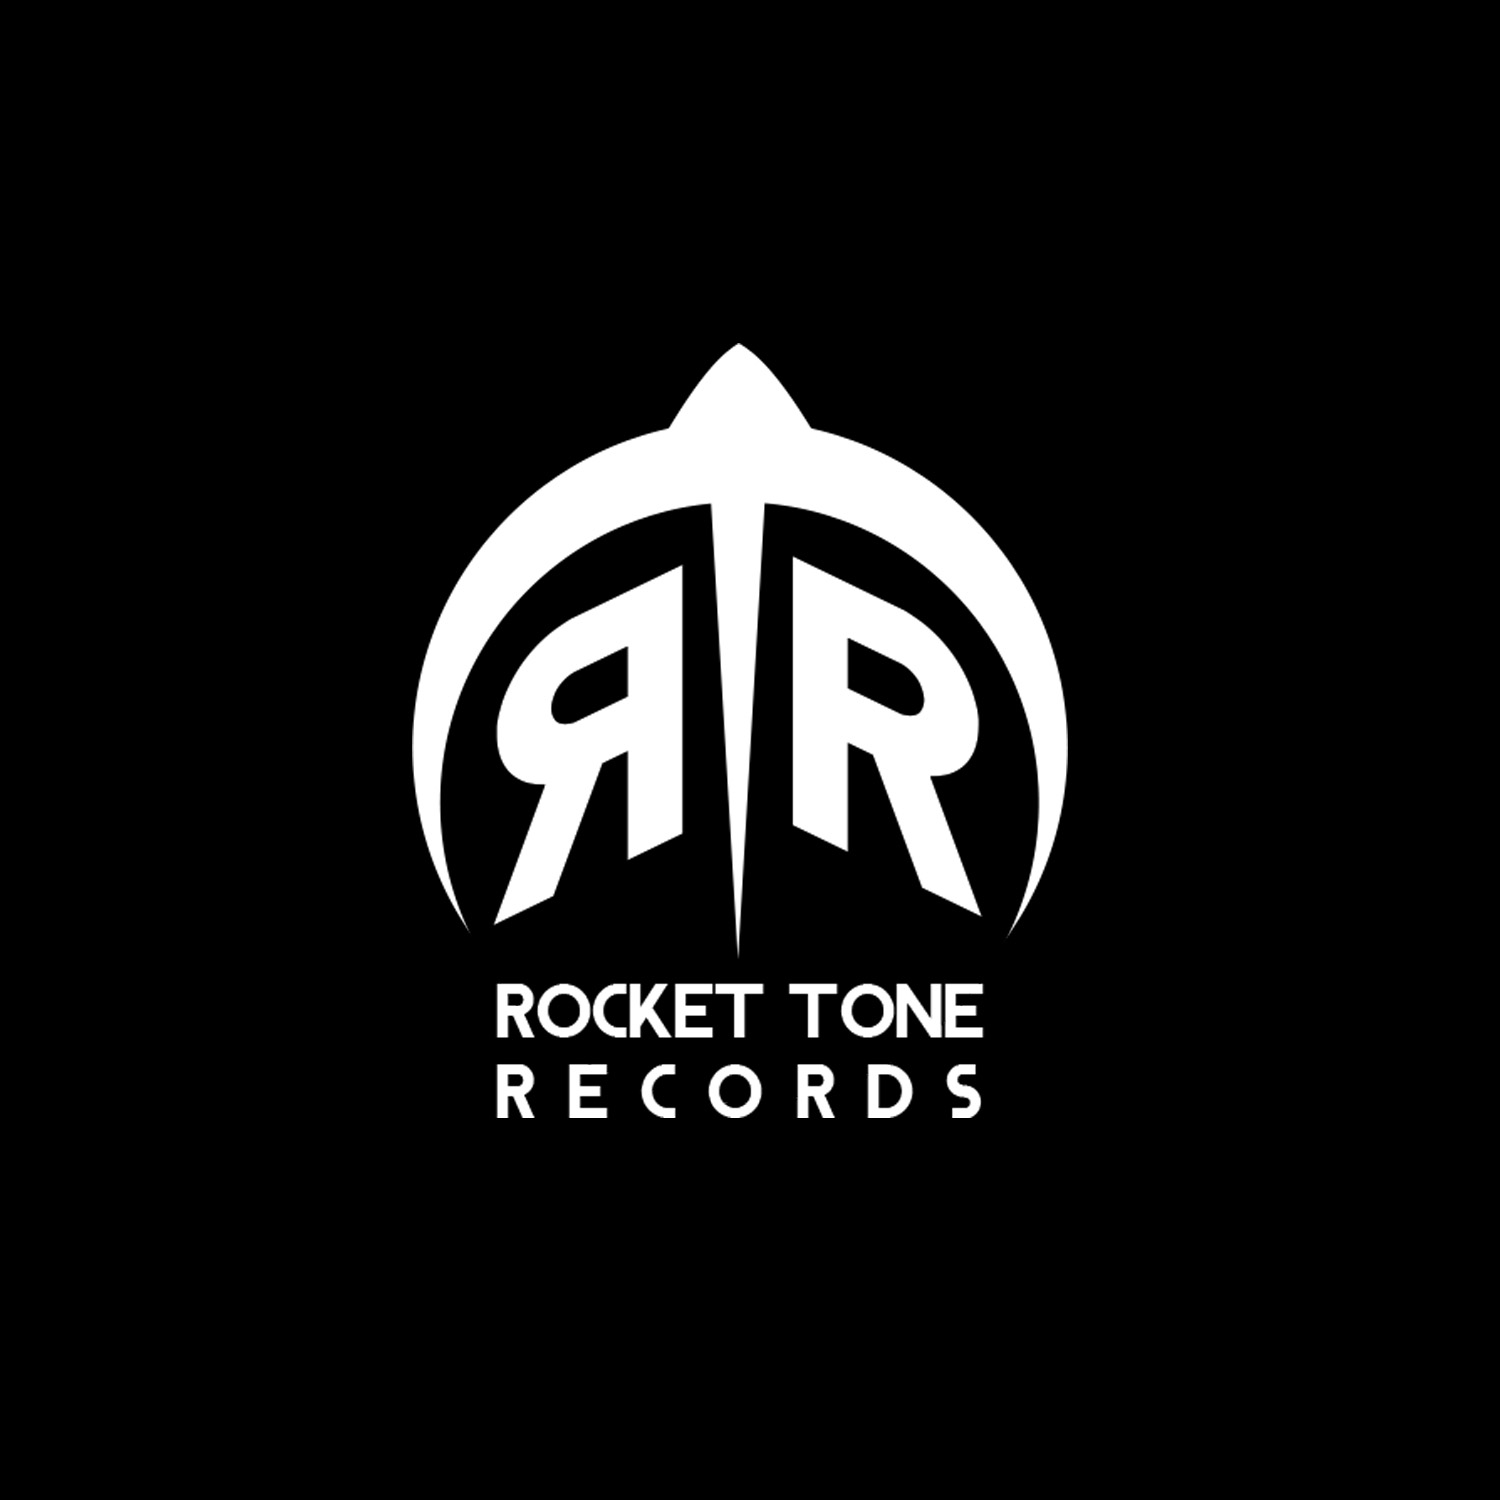 Rocket Tone Records White